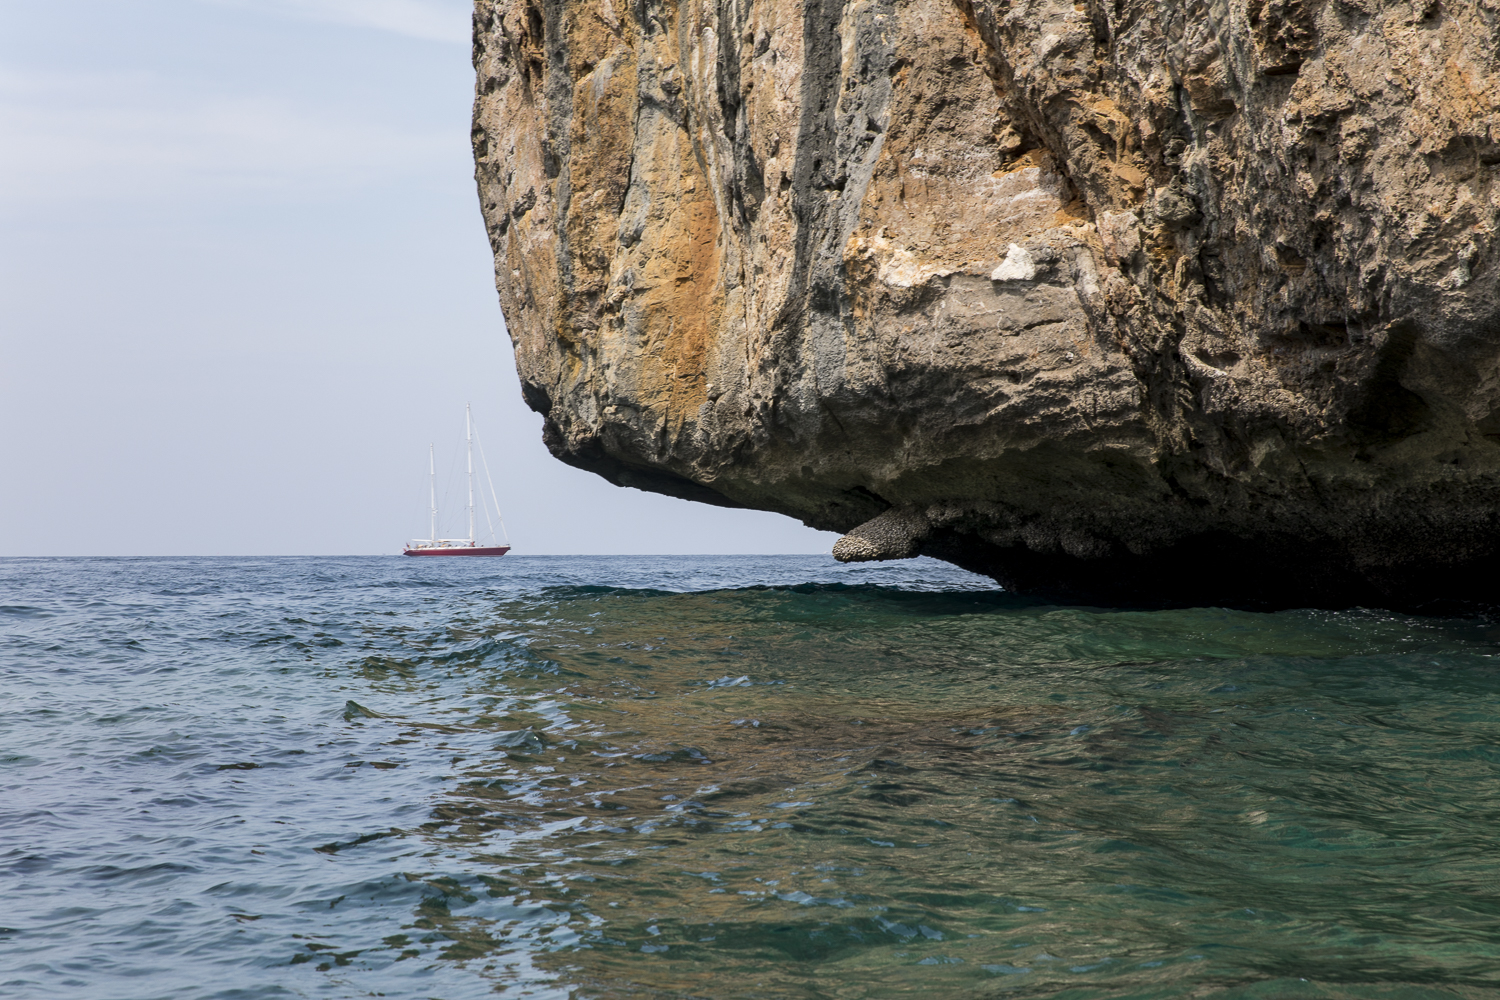 Aphrodite_anchoring near rock island sailing tour in Andaman Sea.jpg